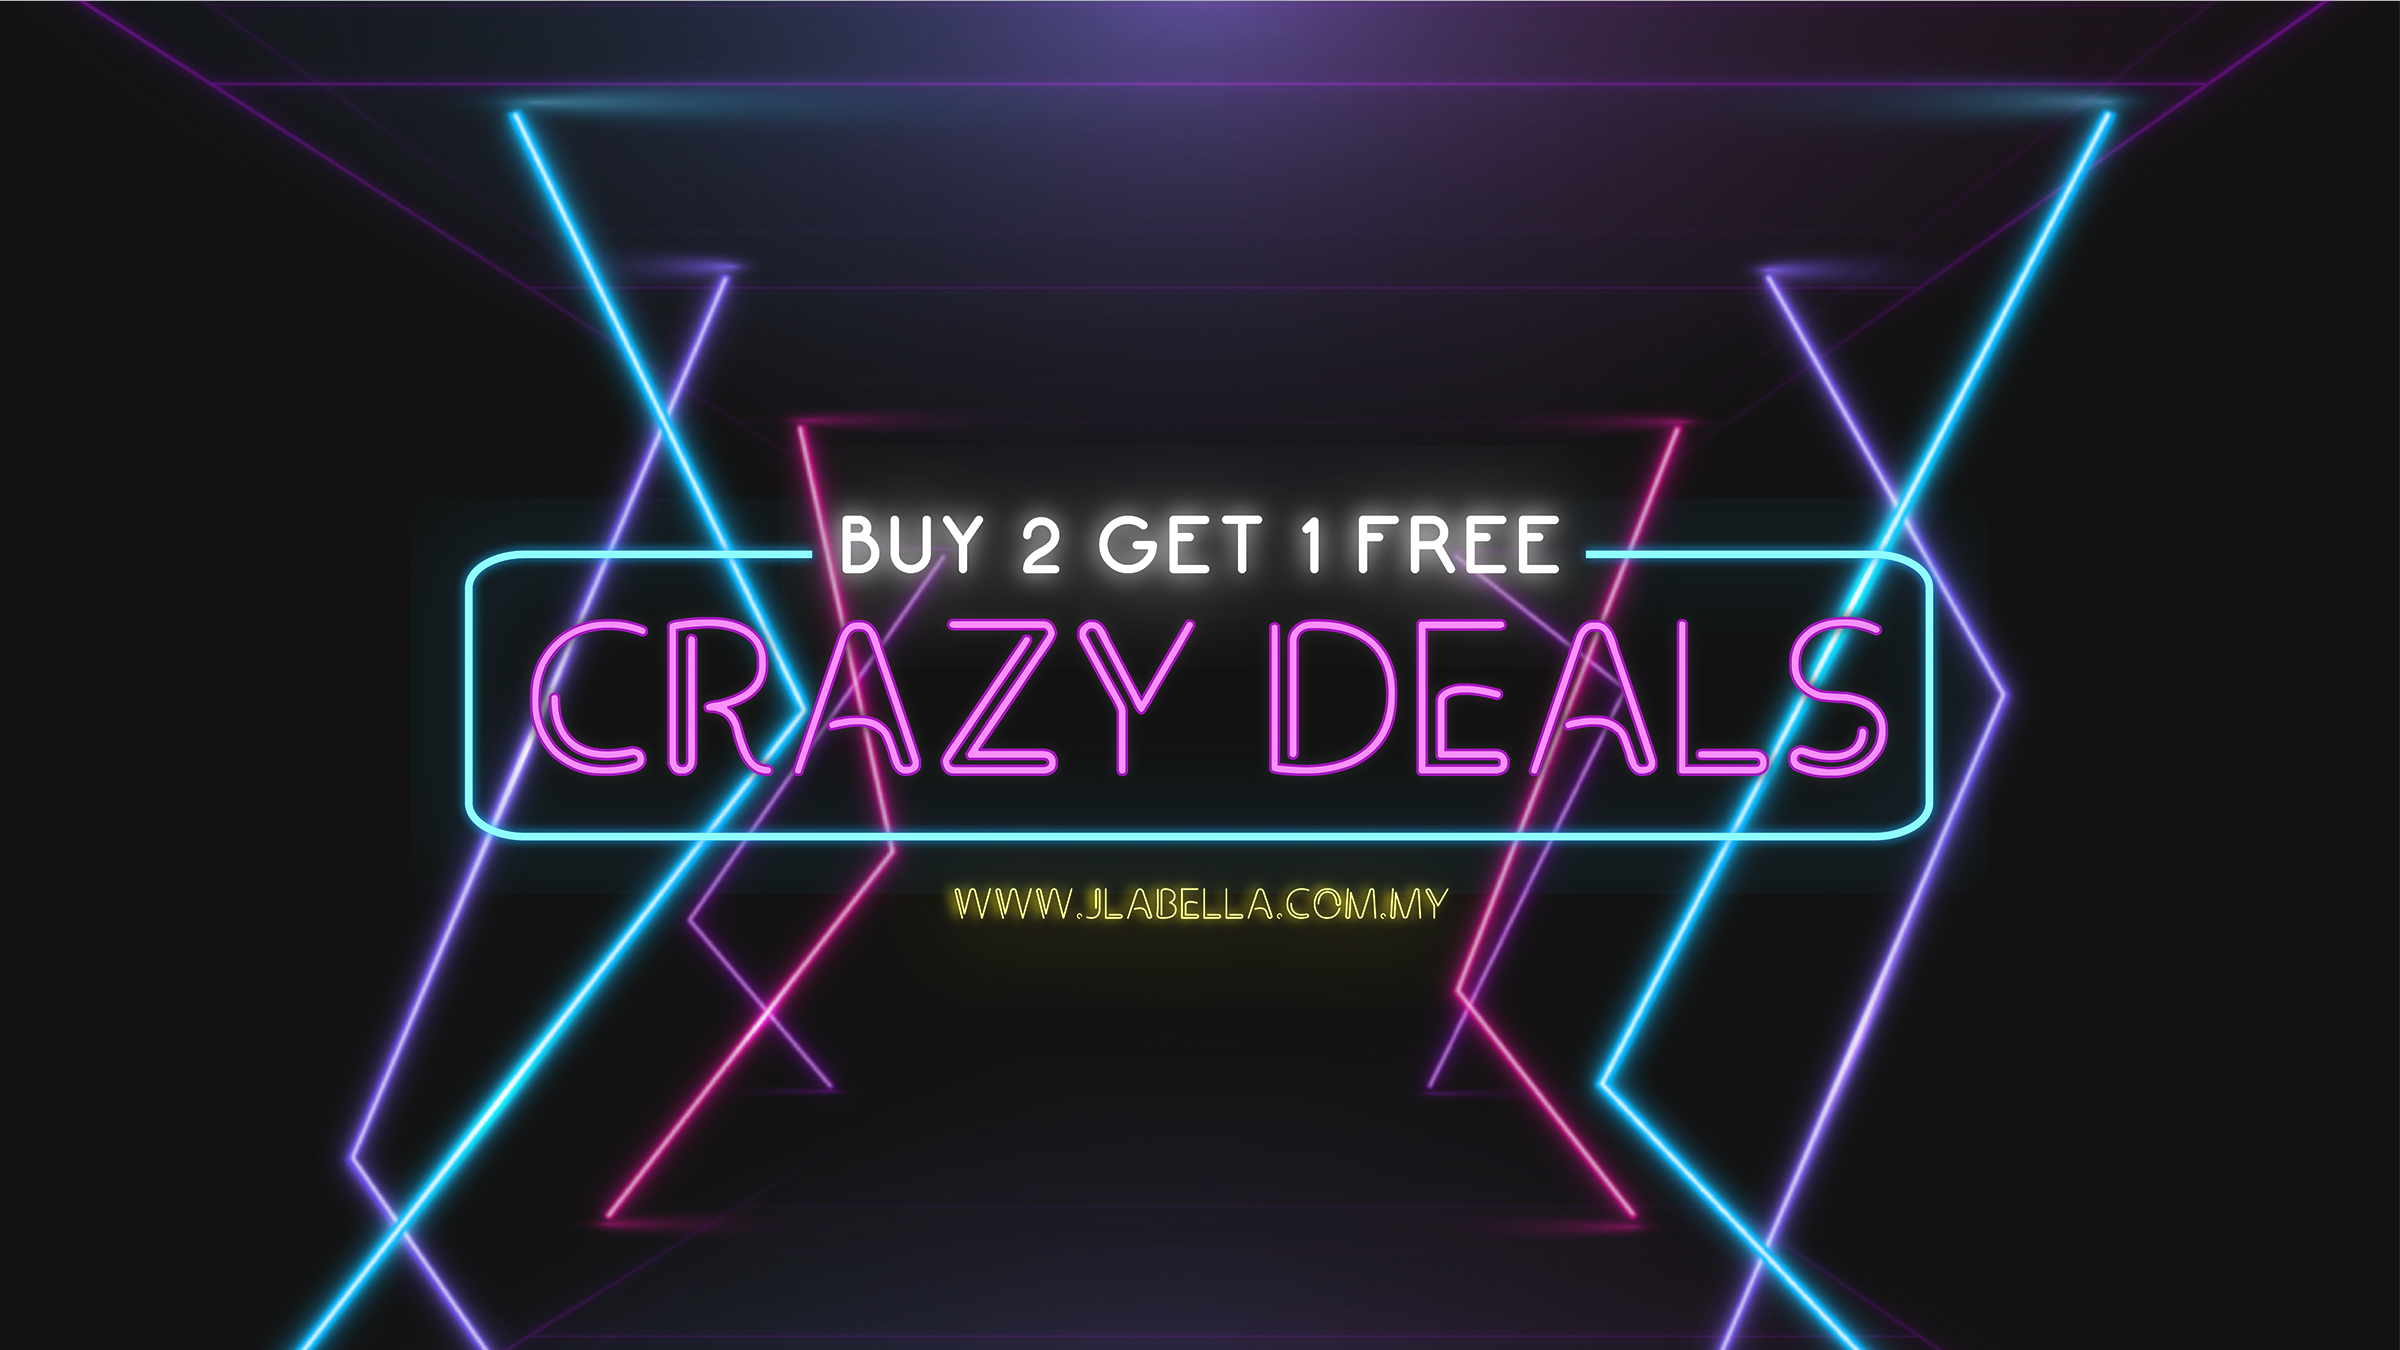 ACRAZY DEAL - BUY 2 GET 1 FREE